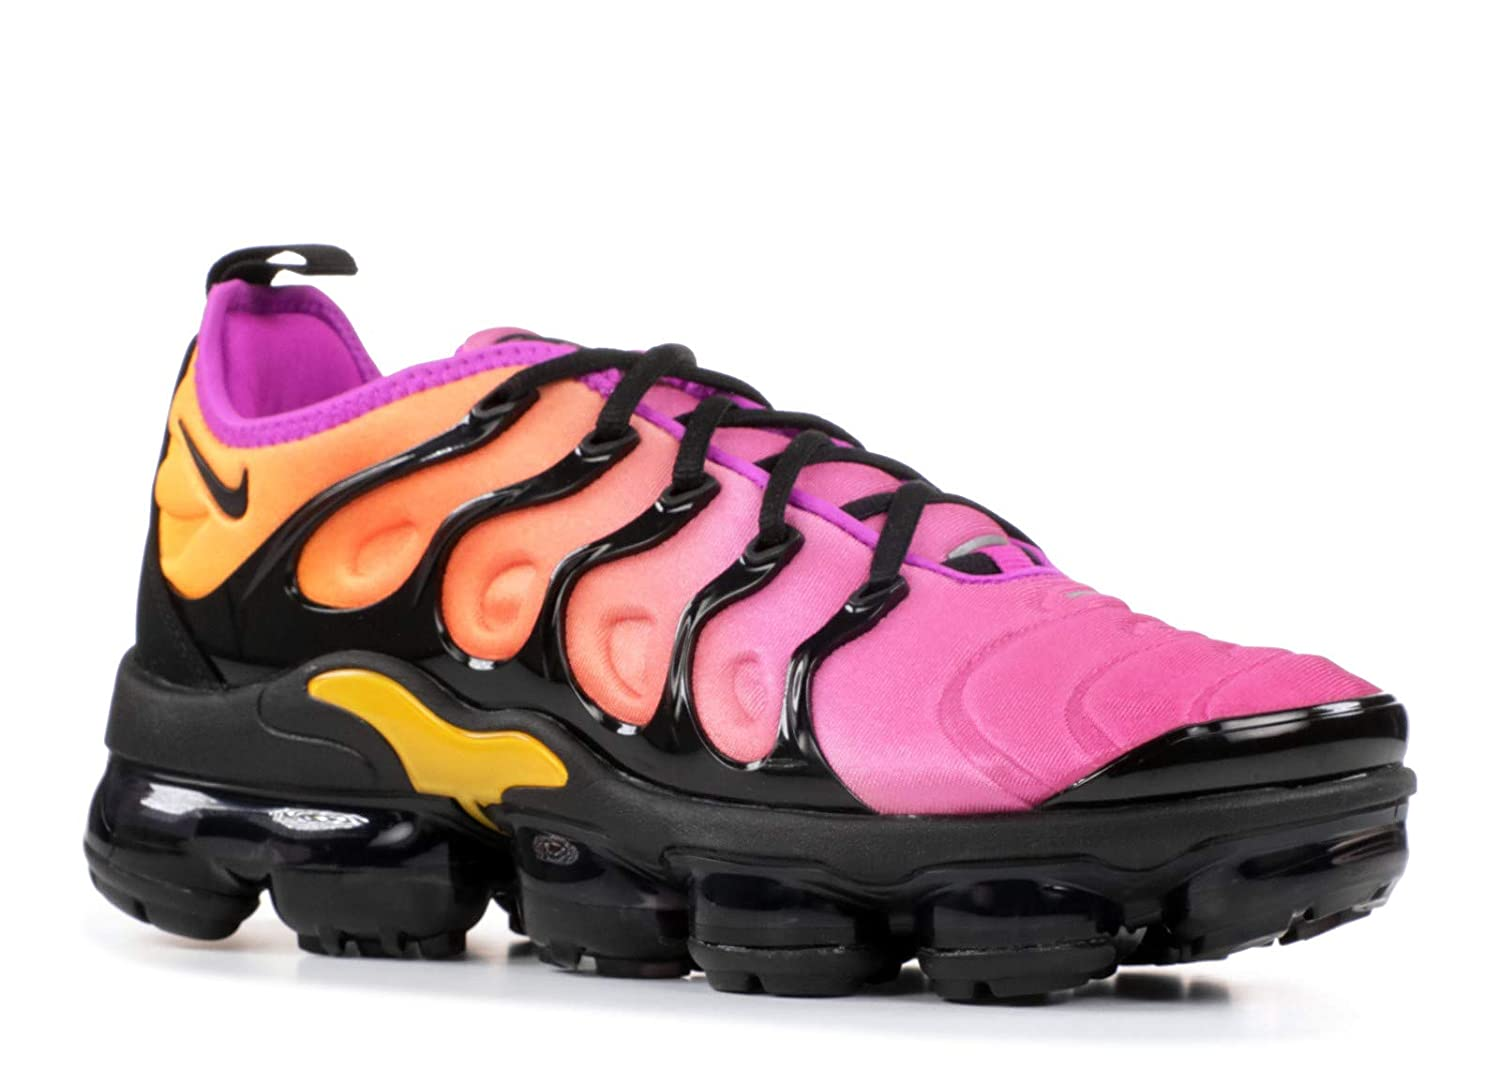 Multicolor Nike Women's Air Max Run Lite 5 Running shoes